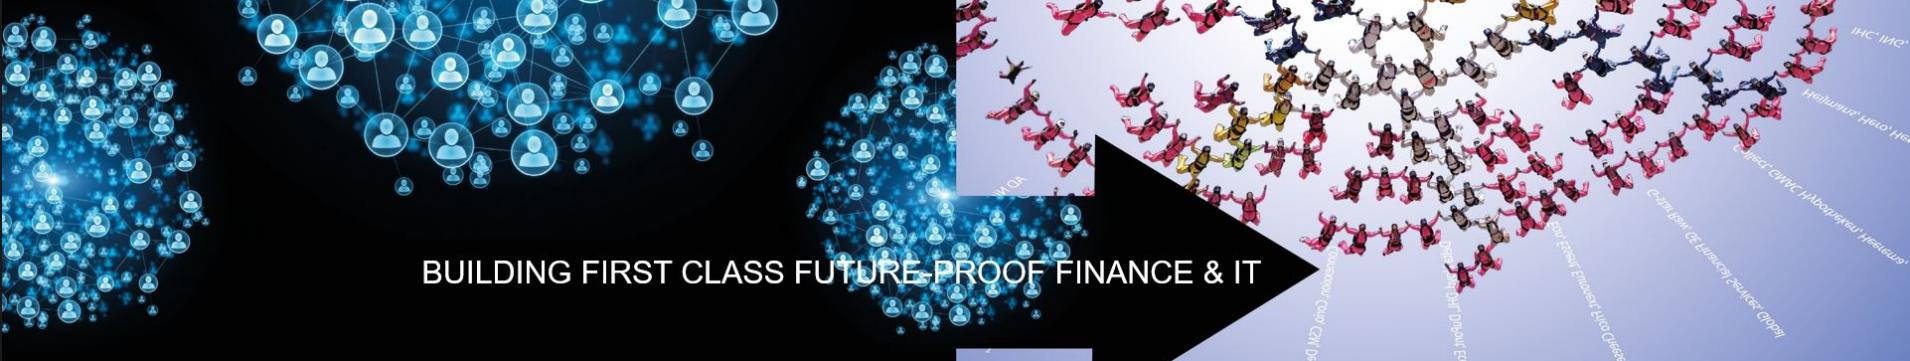 First class future proof finance It organisatie Freelance Interim CFO CIO Accountant Controller